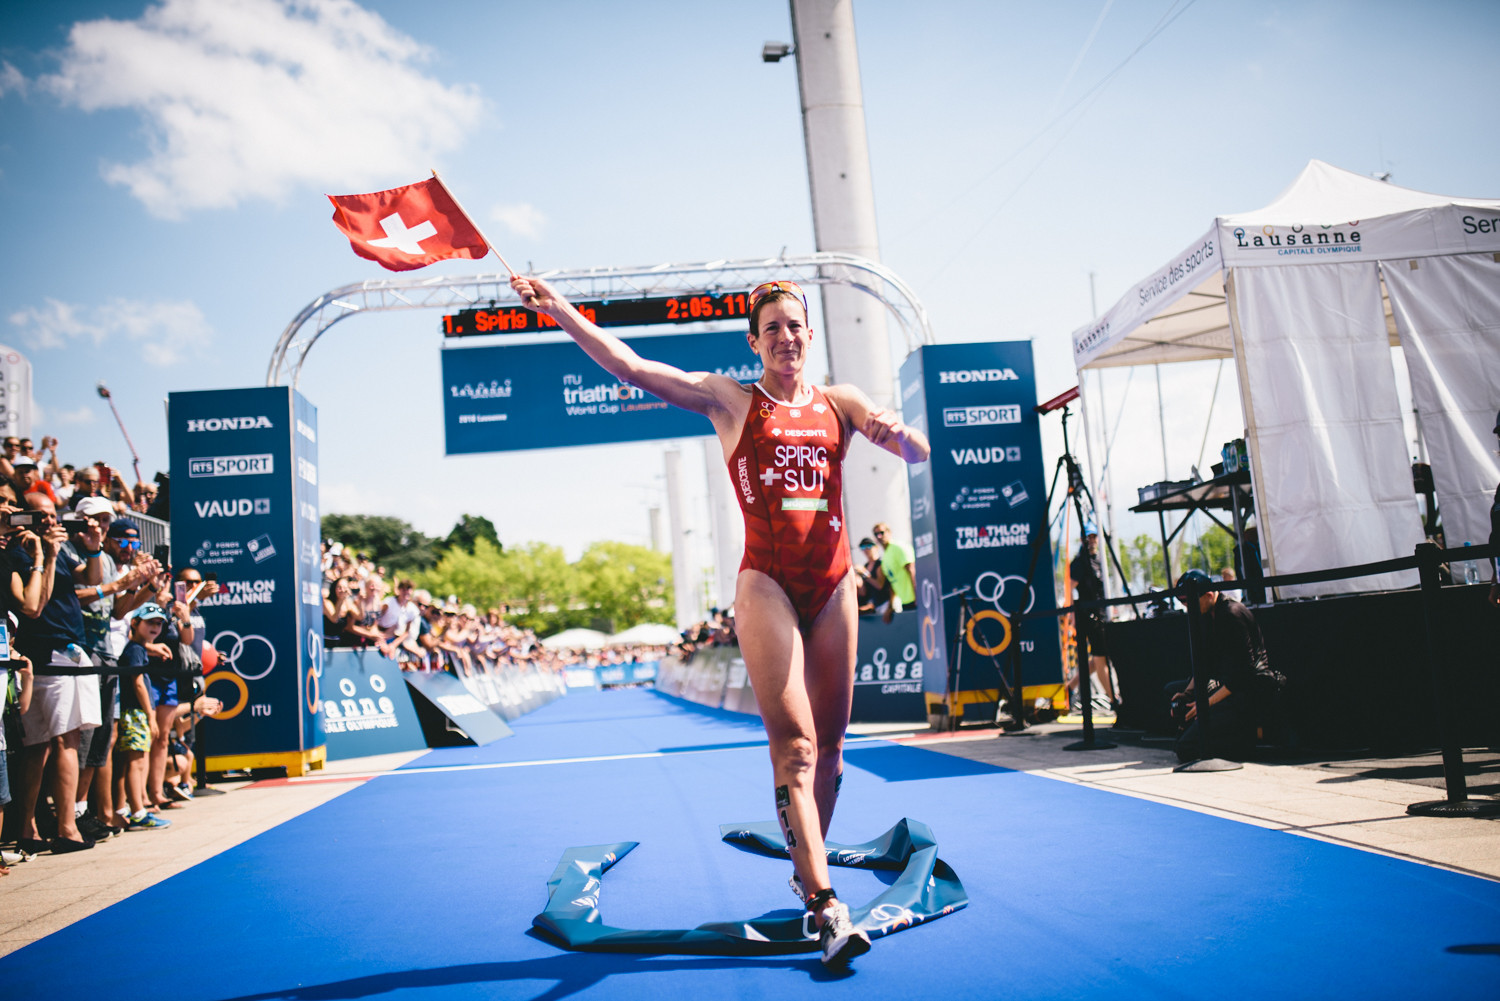 Organisers of next year's World Triathlon Series Grand Final in Lausanne have confirmed the dates for the season-ending event ©ITU